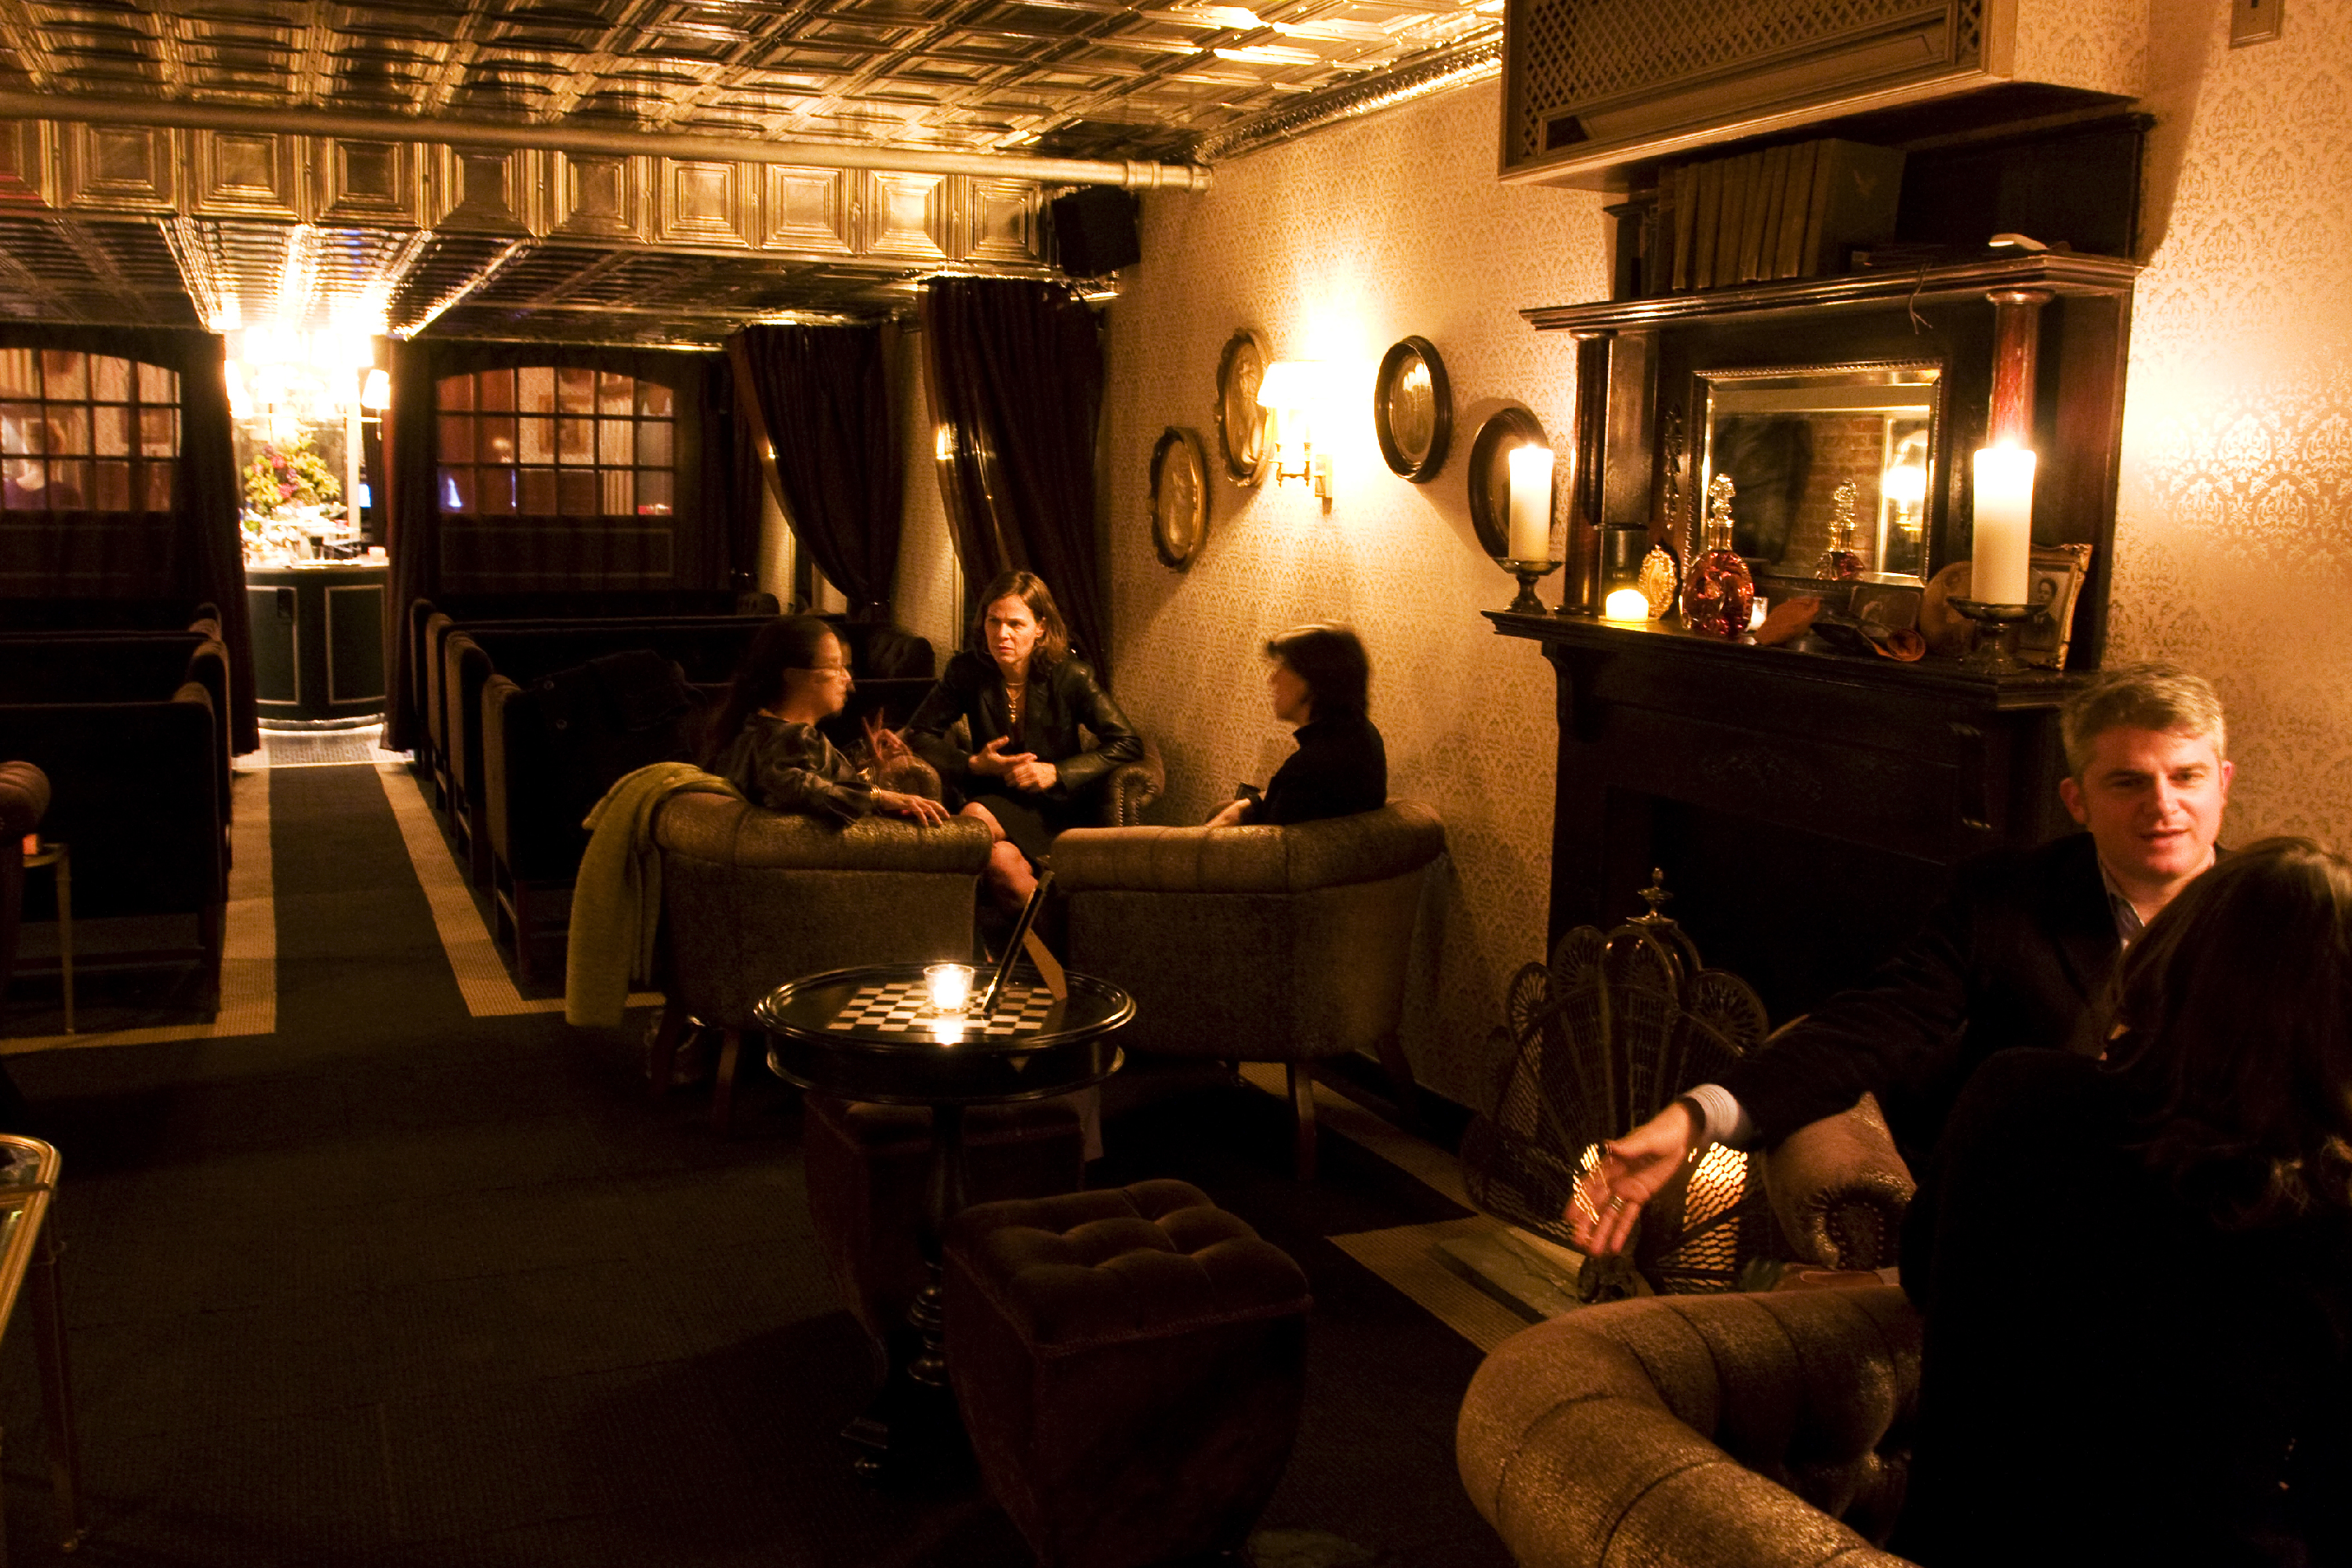 Most romantic bars in NYC, including lounges and speakeasies